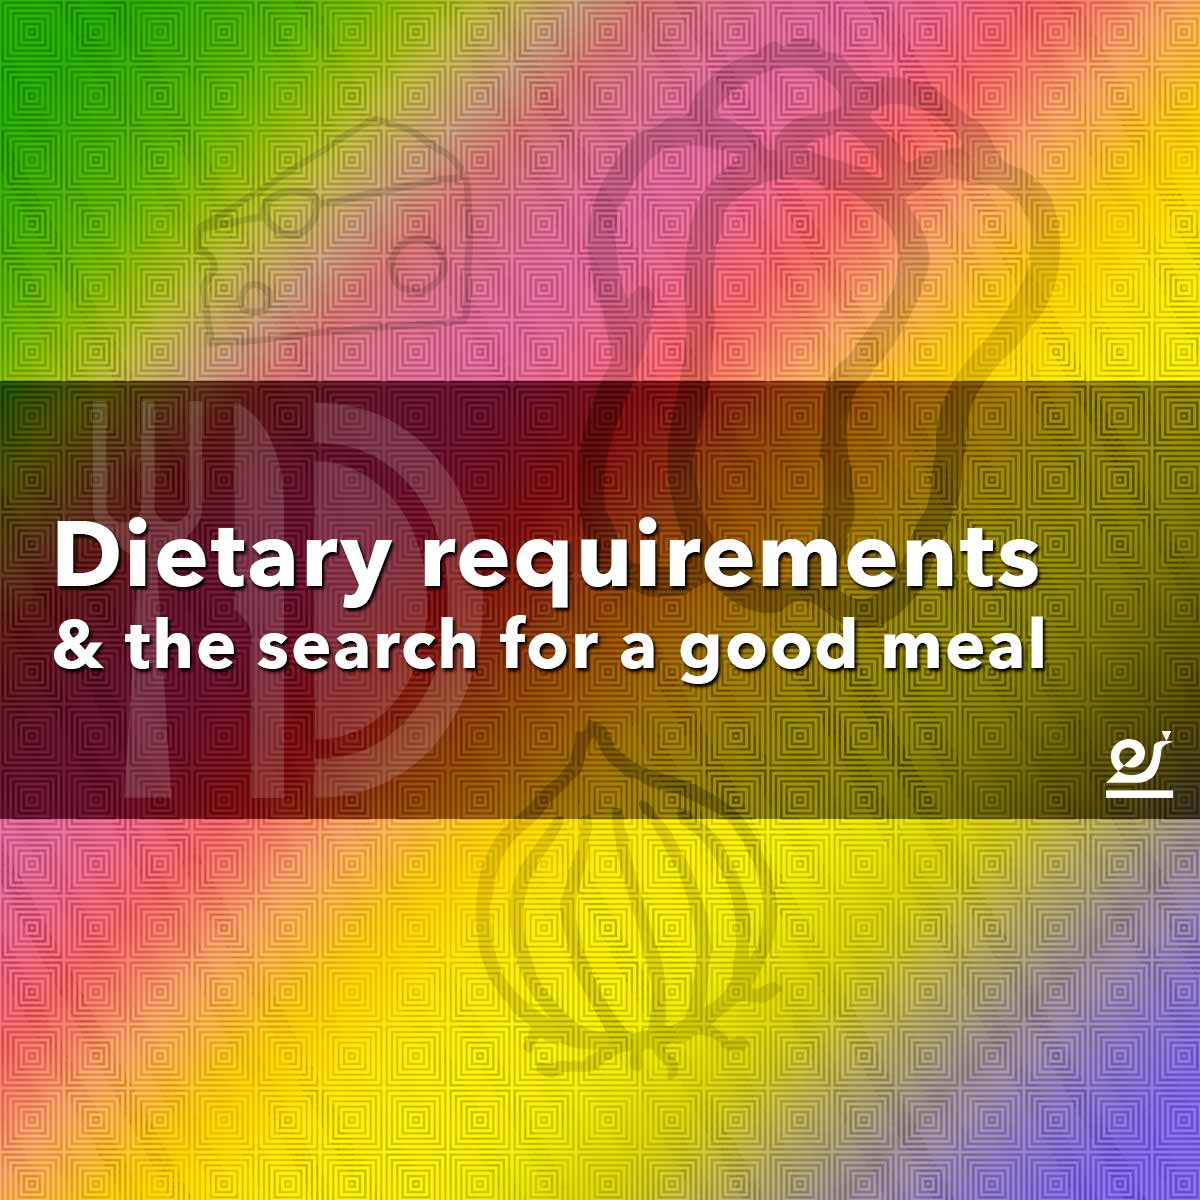 Dietary requirements and the search for a good meal.